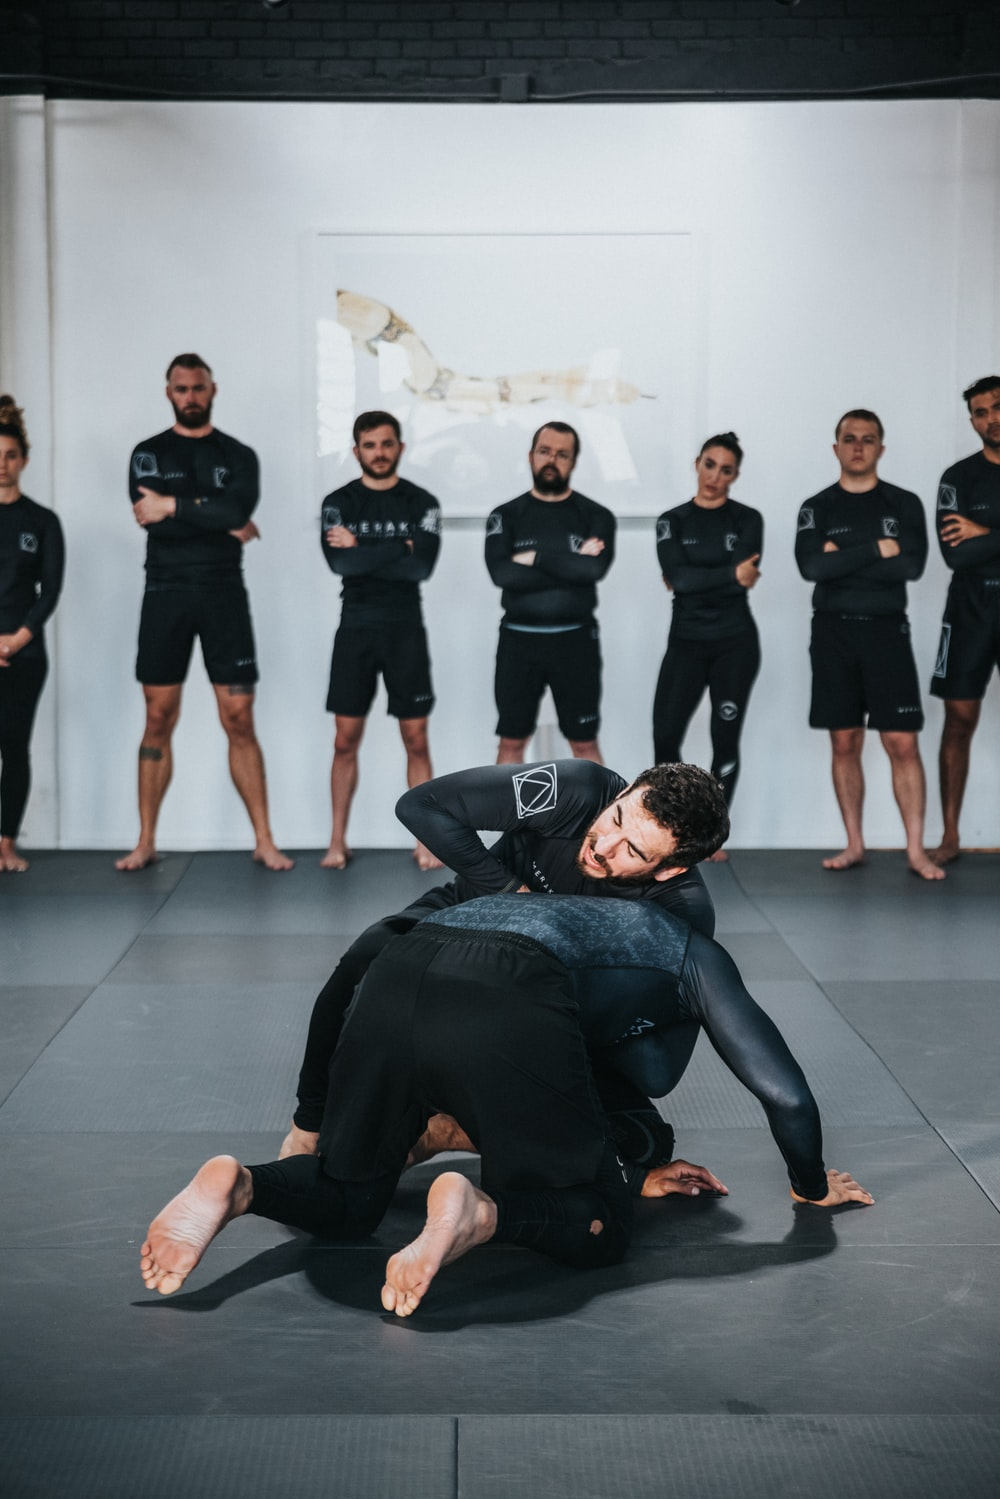 group of people in black shirts and black pants doing yoga